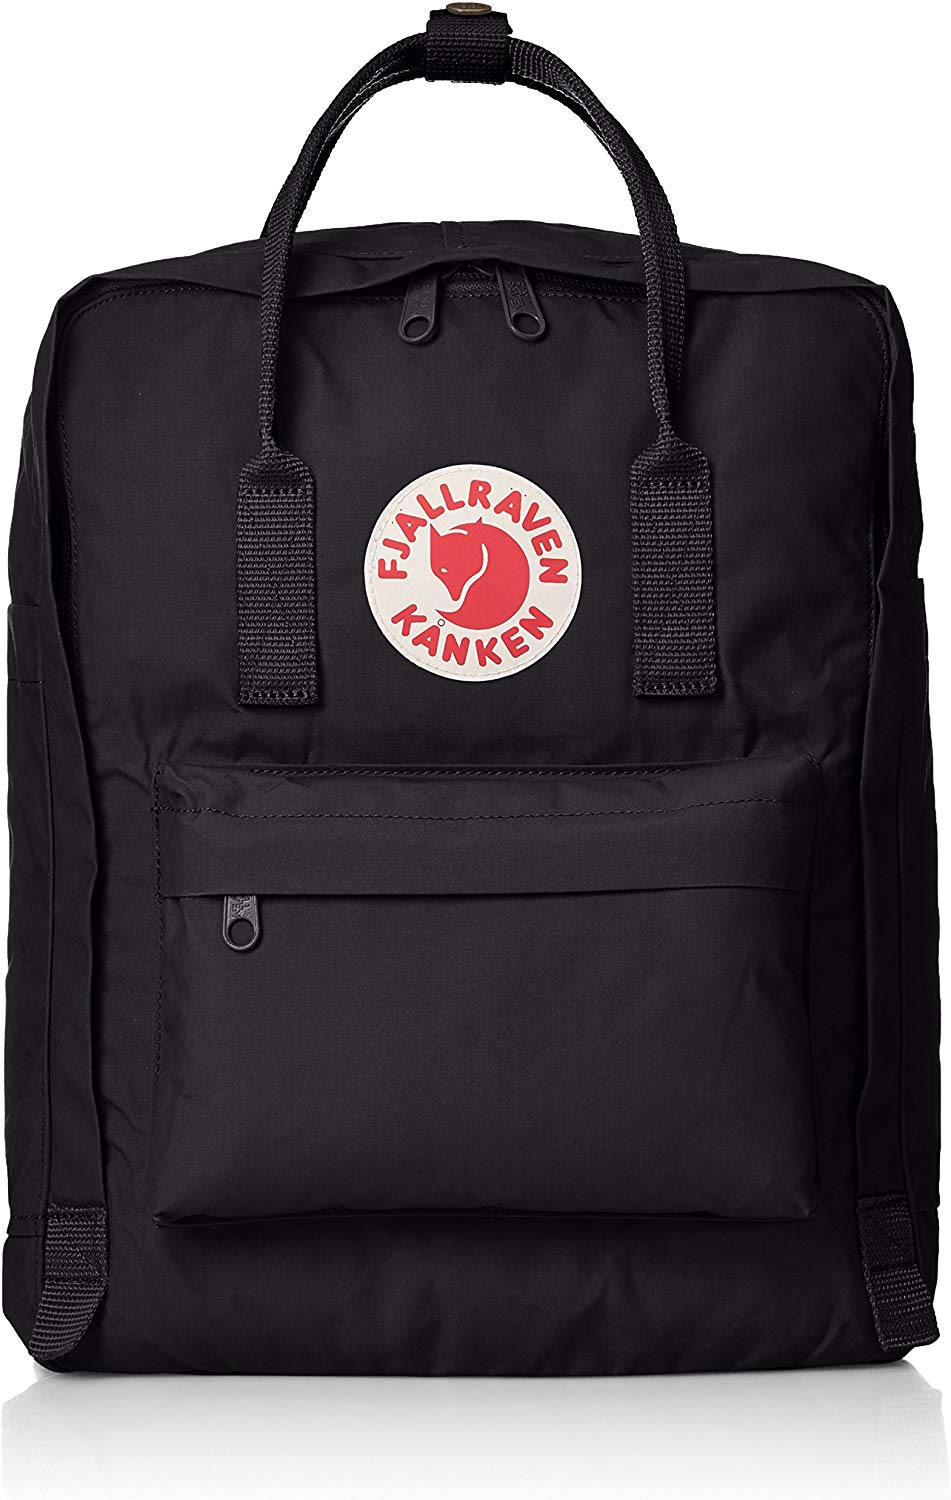 fjallraven kanken daypack backpack